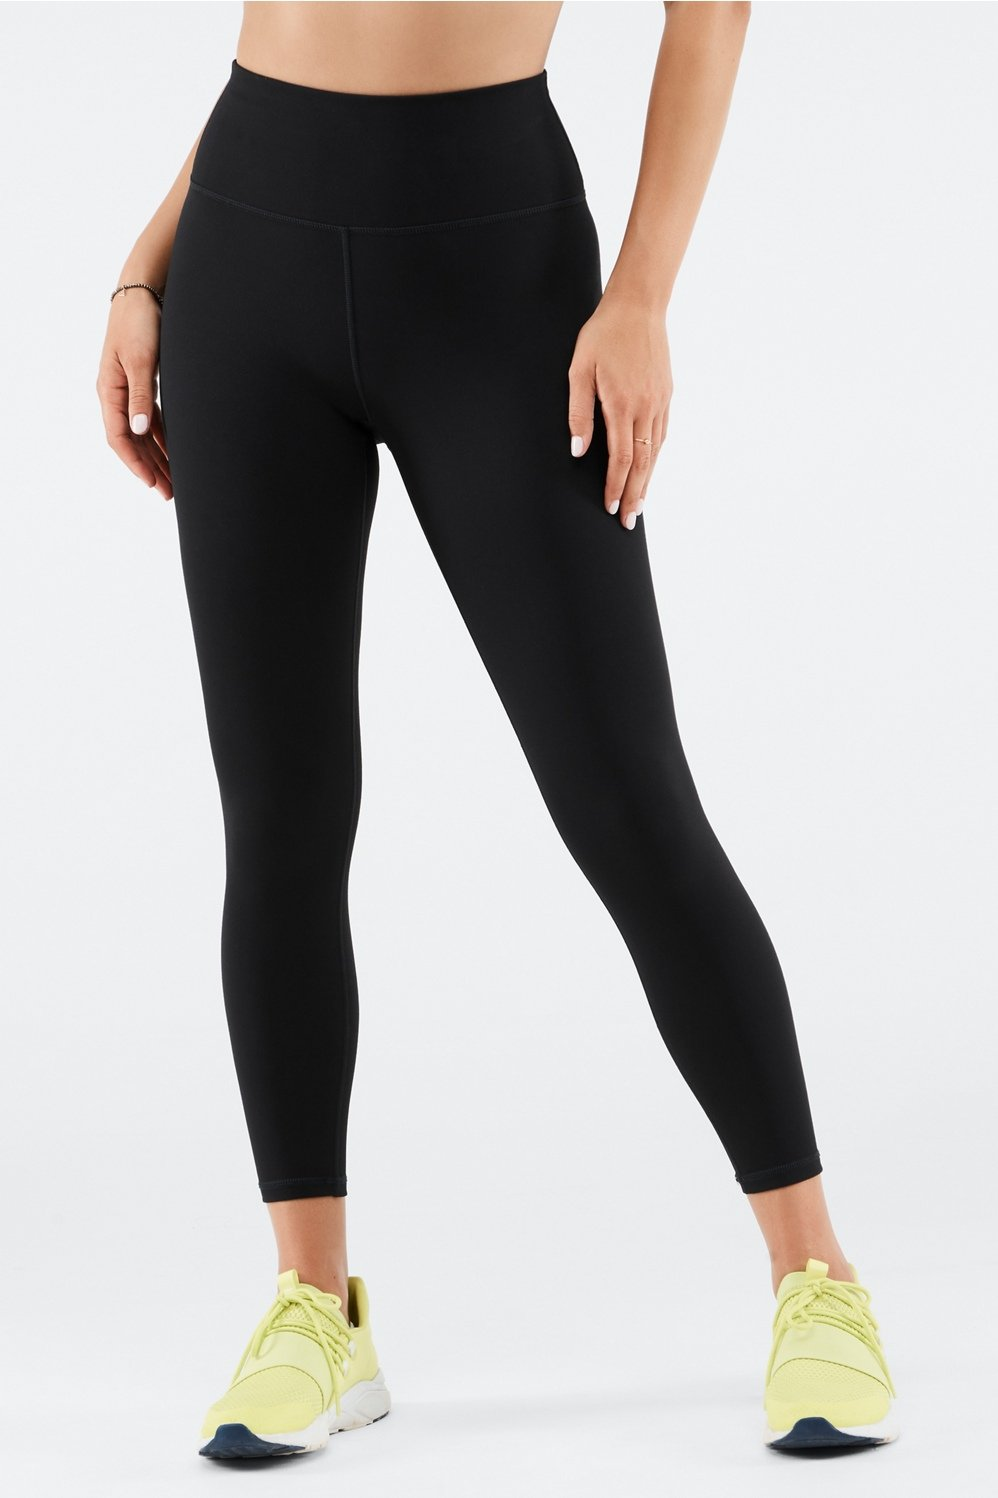 b5eaa12f86556c High-Waisted Solid PowerHold® 7/8 - Fabletics